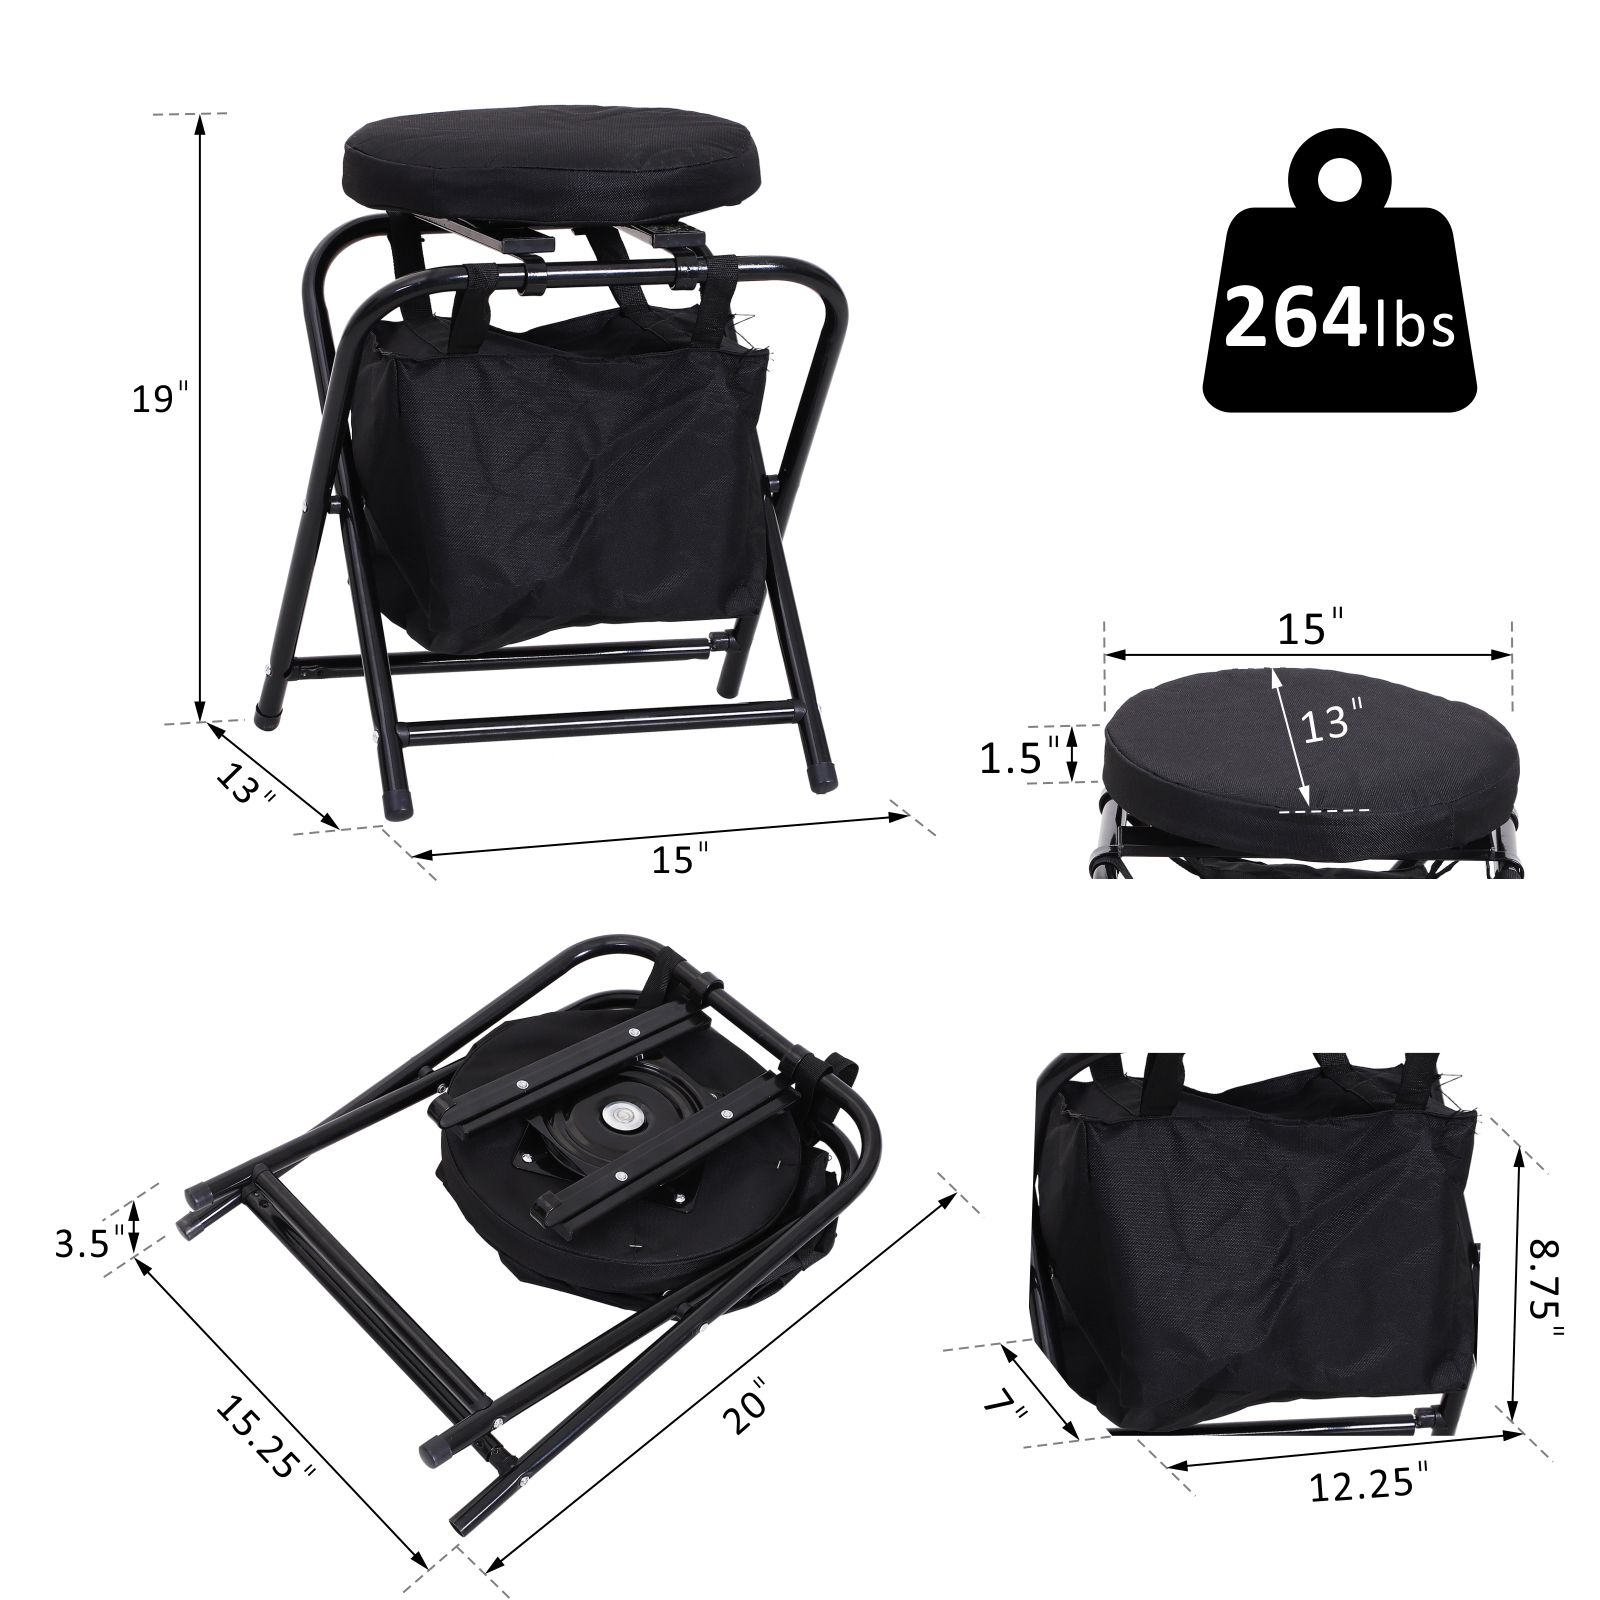 Outsunny-Folding-Rotating-Travel-Camping-Stool-for-Adults-w-Storage-Bag thumbnail 3